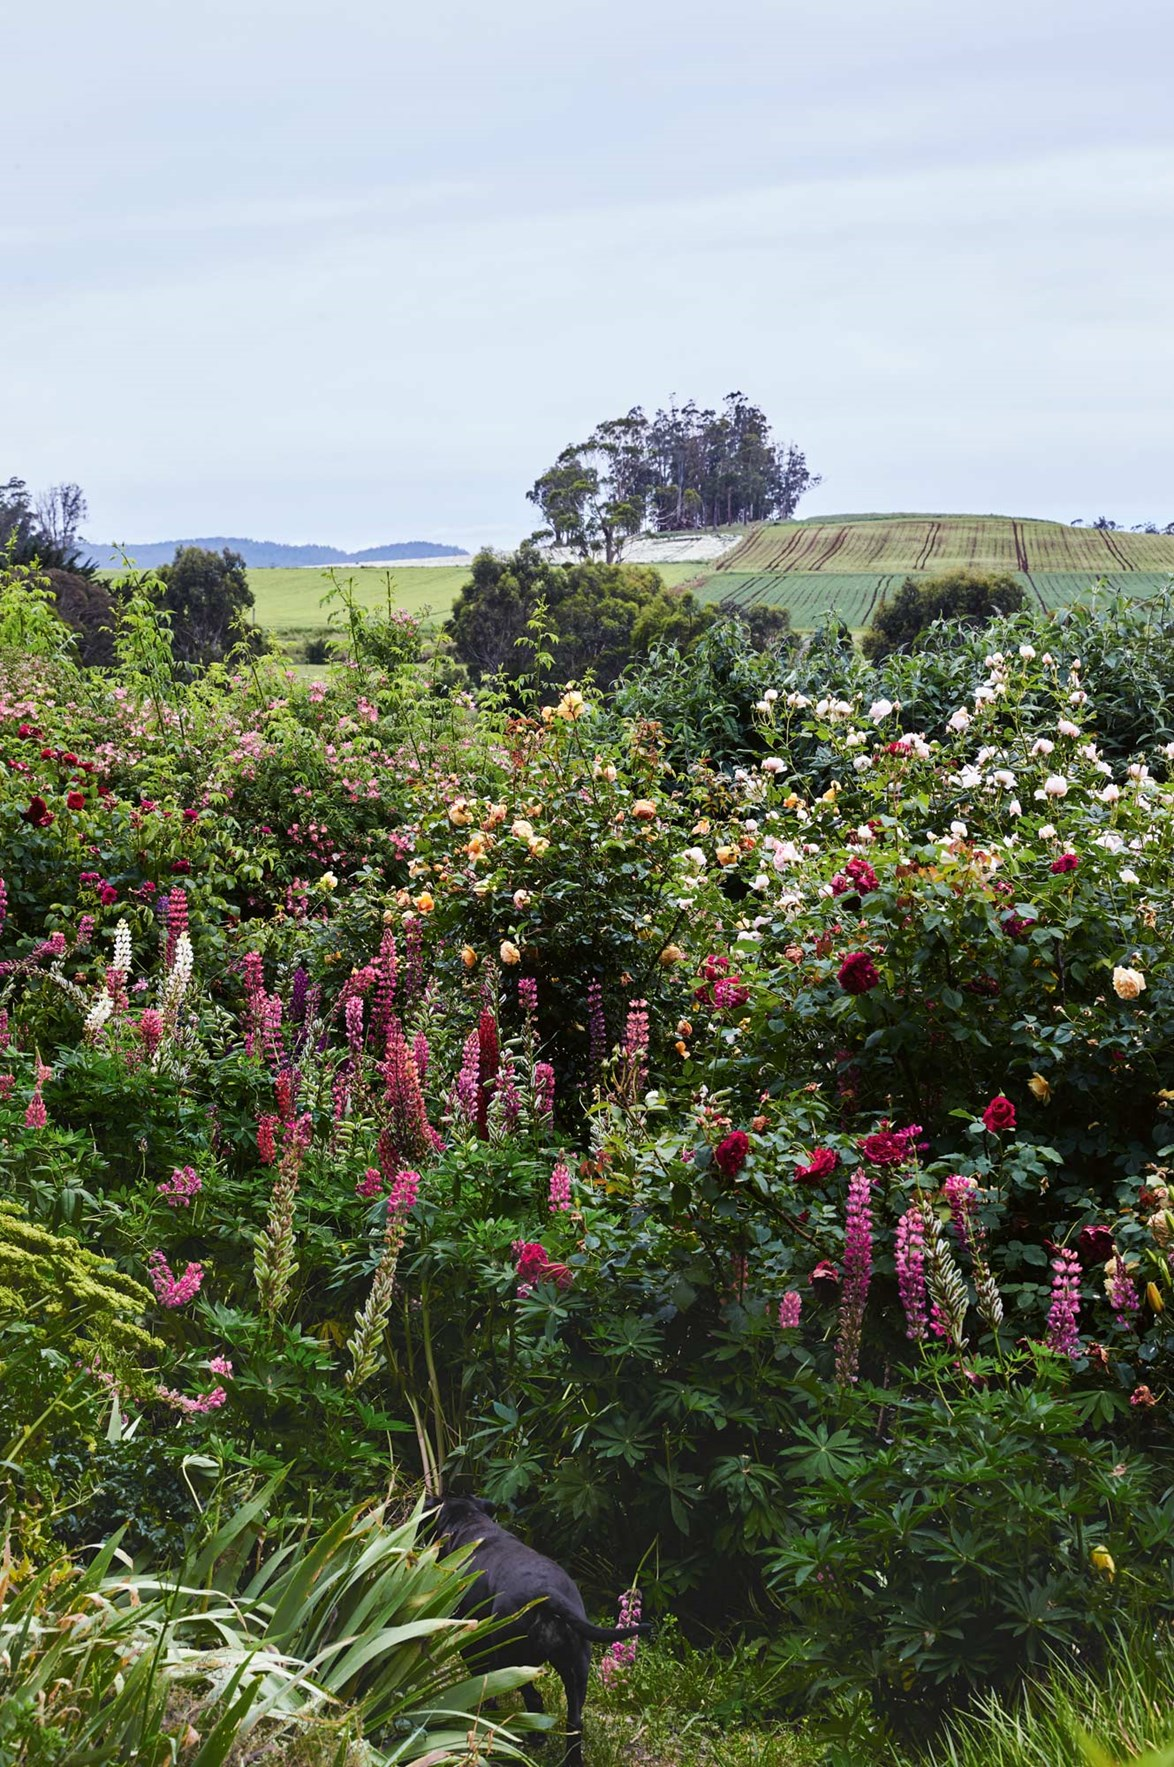 """Sable the dog disappears into bushes of roses and other tall perennials. This sprawling garden is the brainchild of Tom Lyons and Fraser Young, who were inspired to create a [garden in Northern Tasmania](https://www.homestolove.com.au/rose-haven-a-lush-garden-in-northern-tasmania-14015